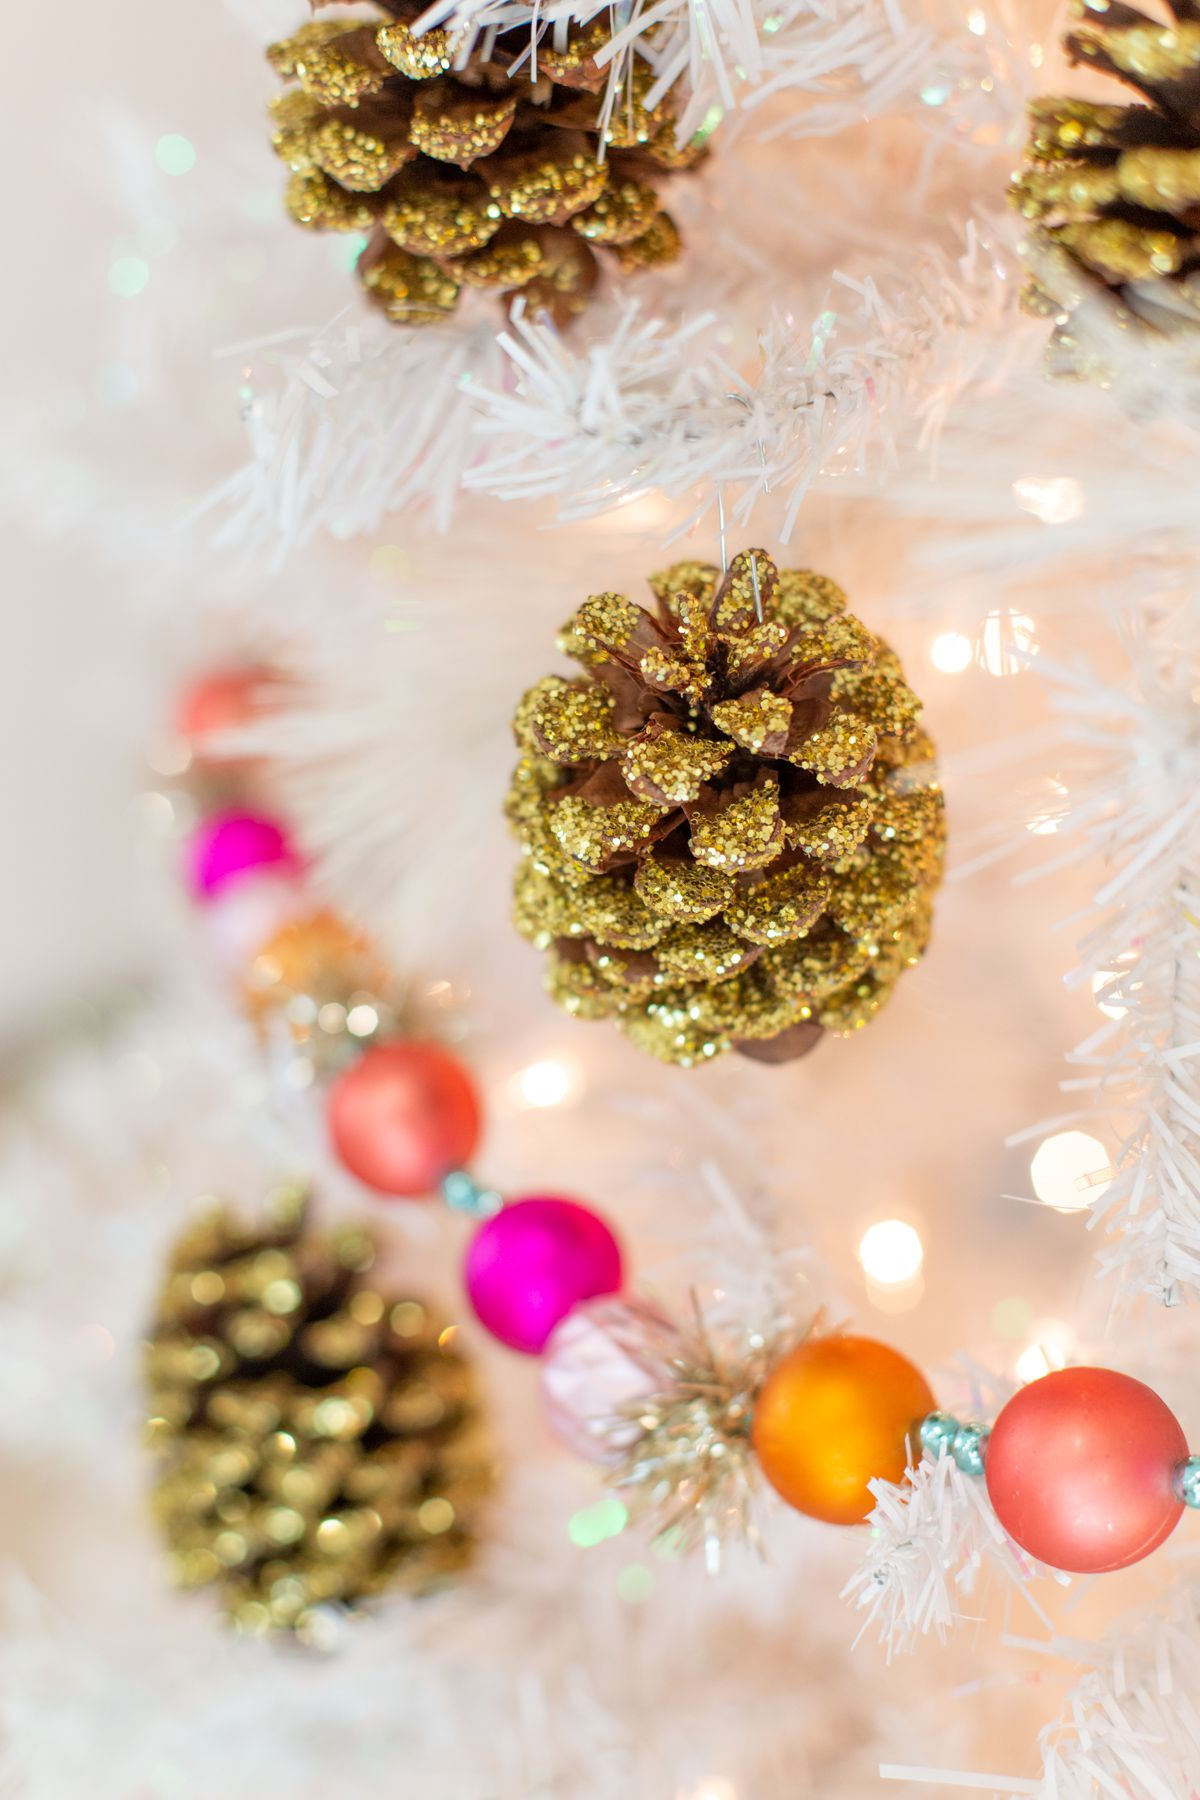 How to Make Sparkly and Glittery Pine Cone Ornaments